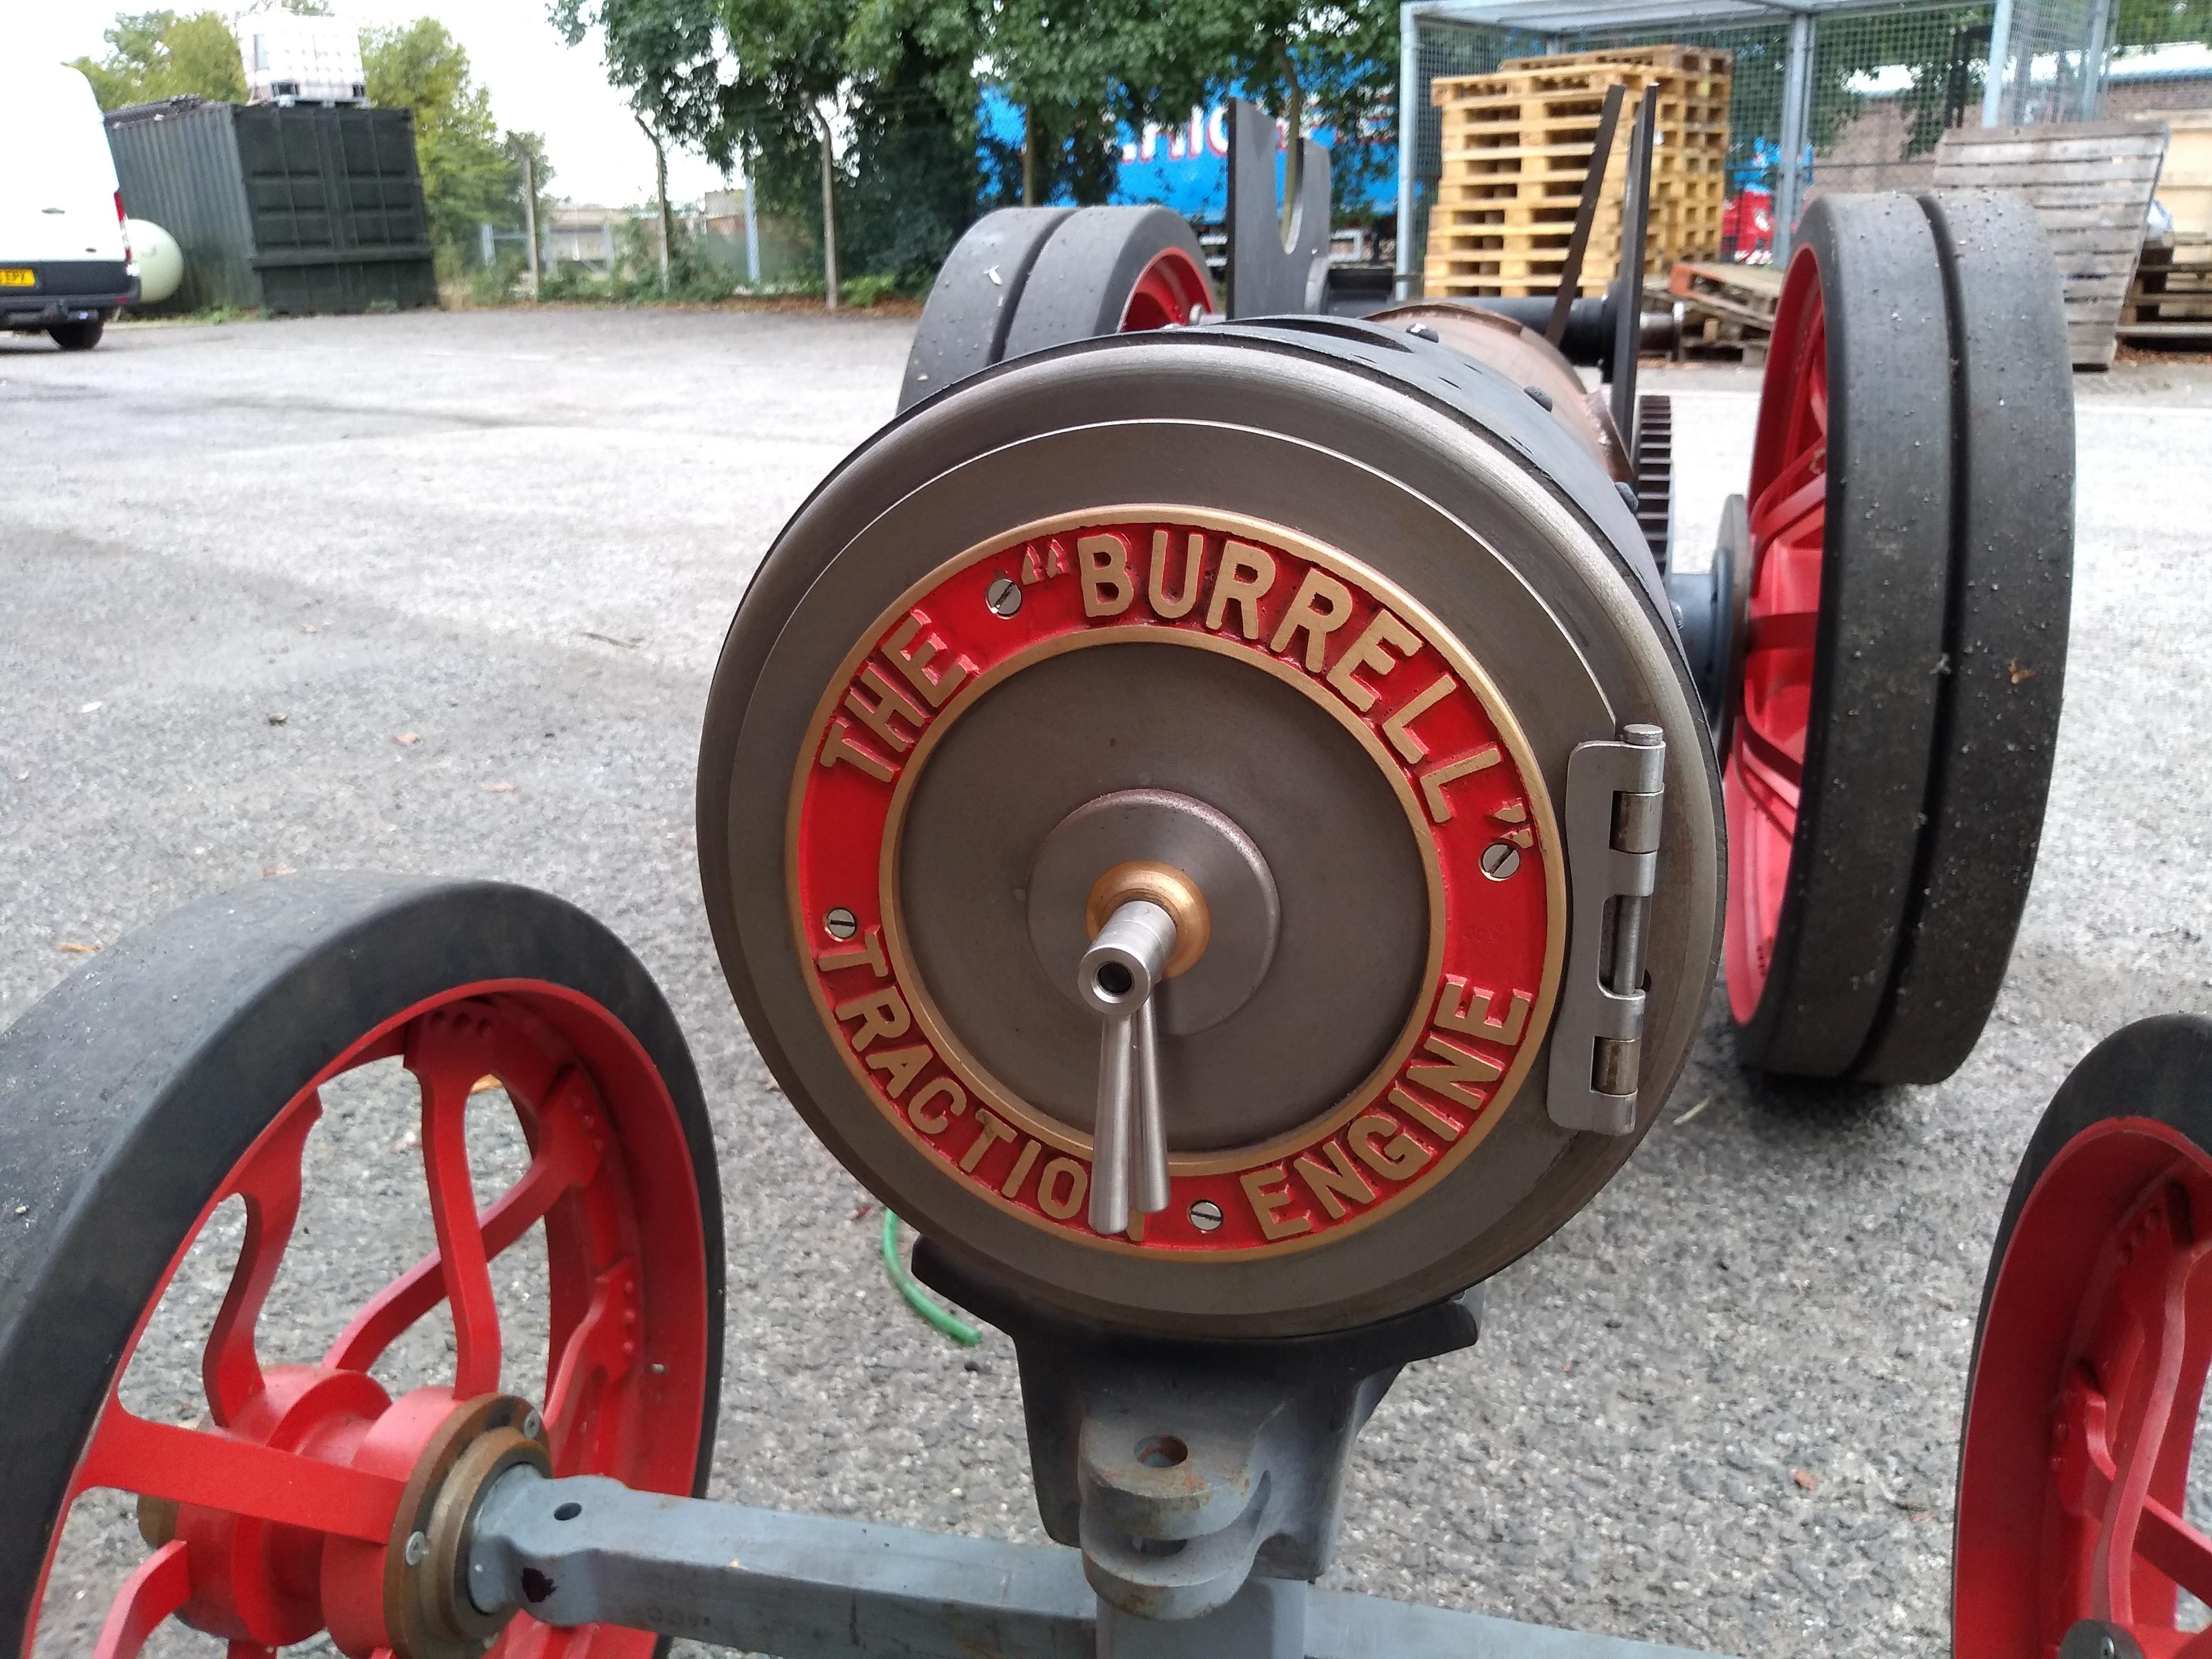 Part-built 4 inch scale Burrell agricultural engine